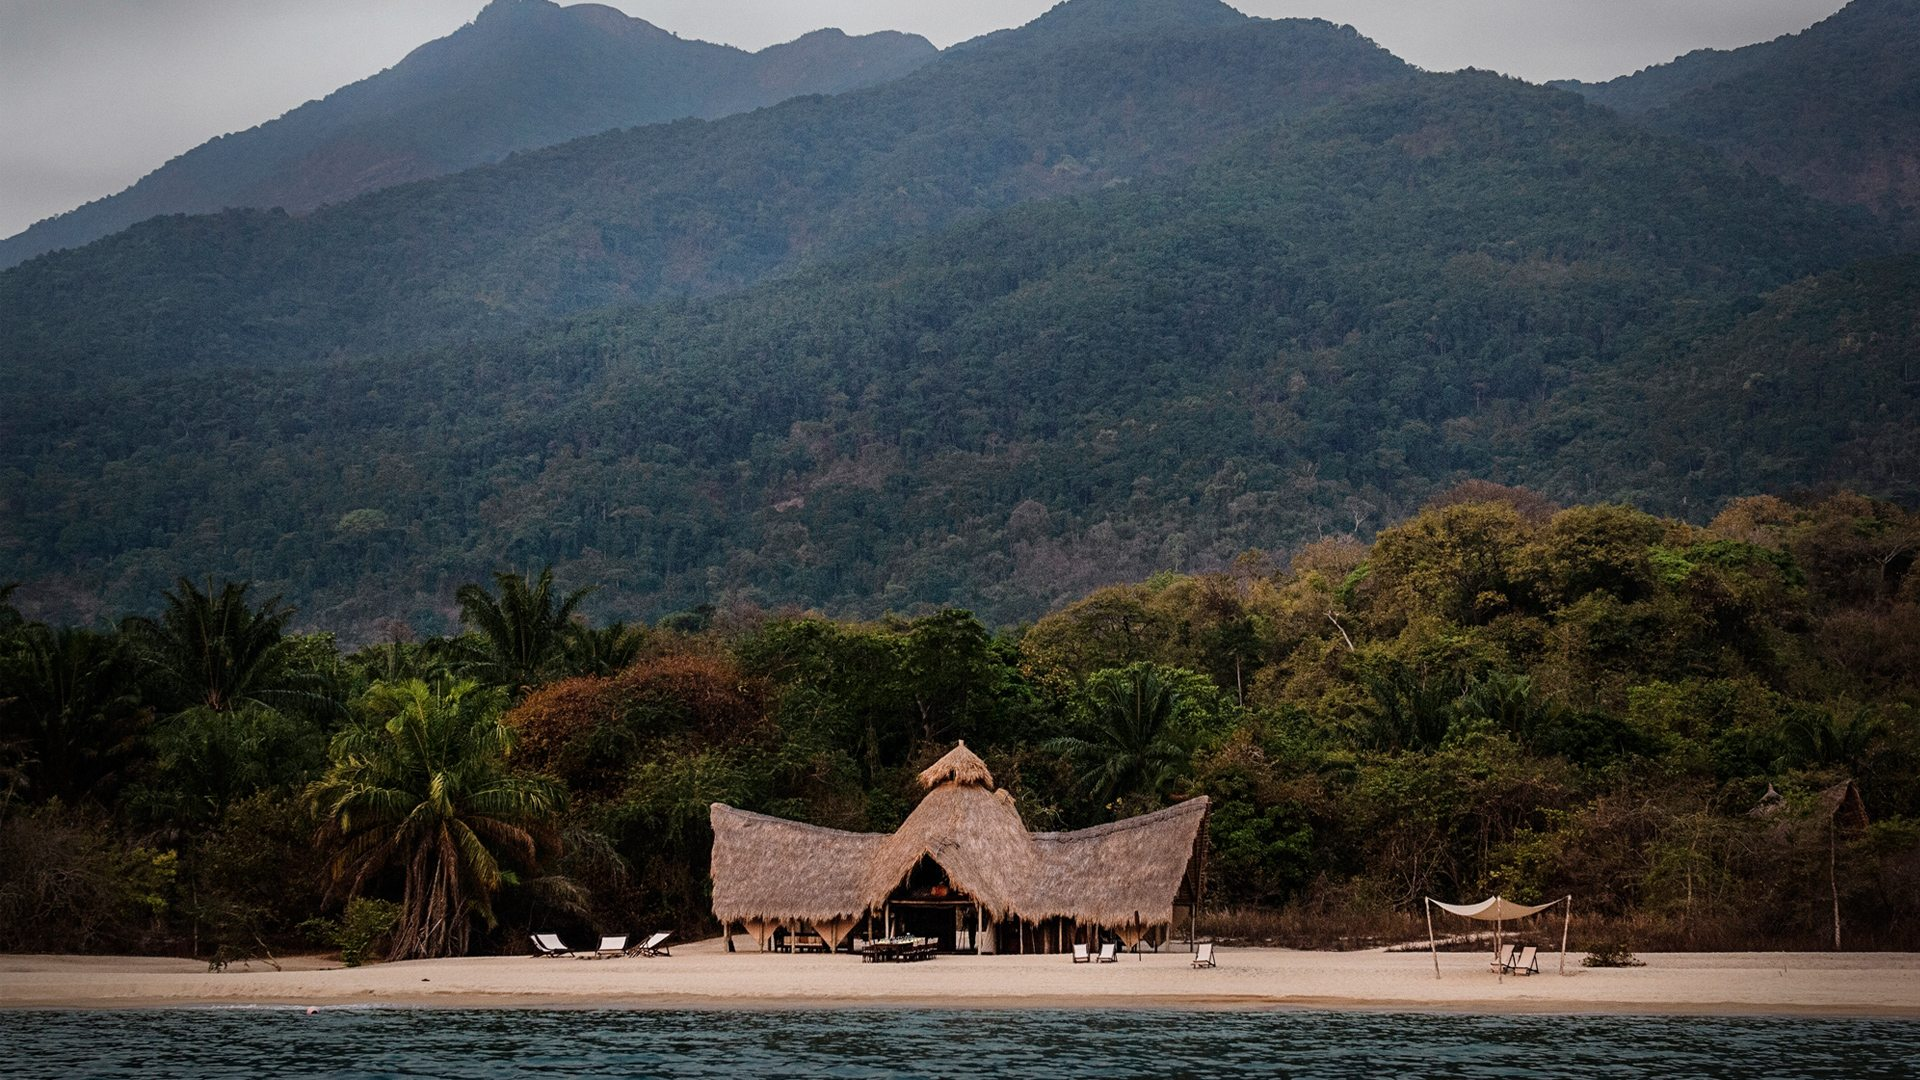 DID YOU KNOW? Mahale Mountains National Park